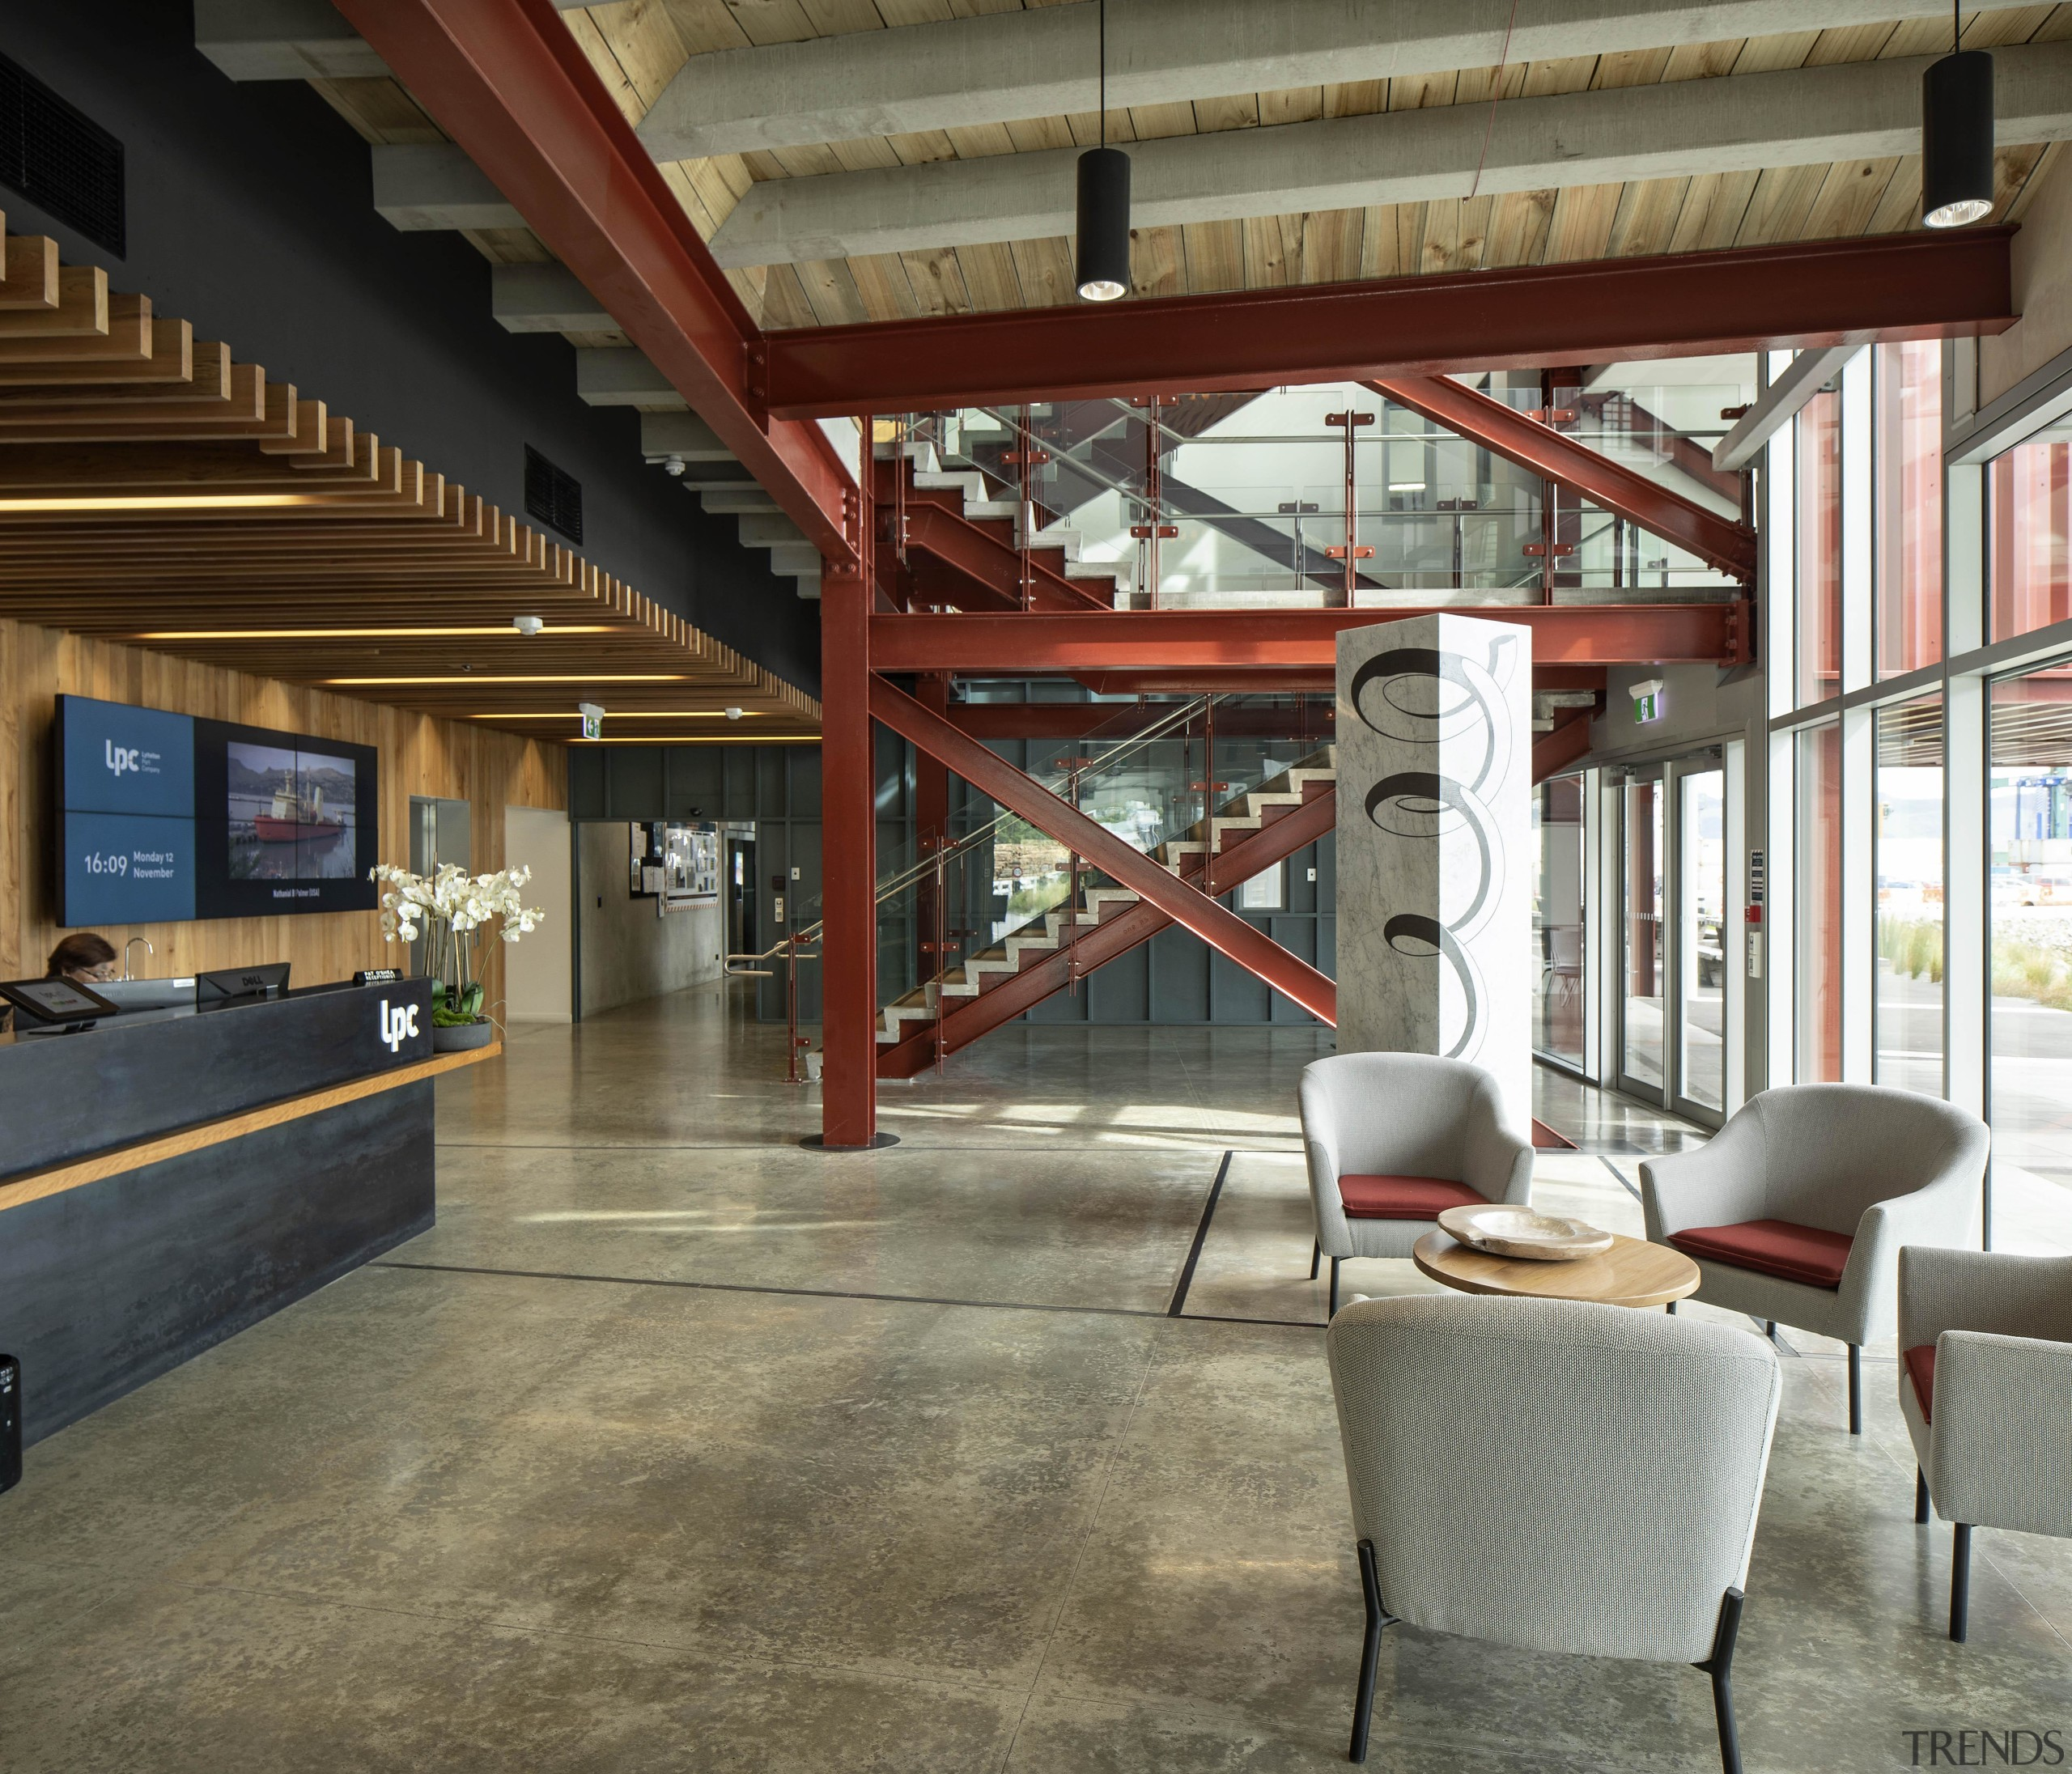 Waterfront House at Lyttelton Port won the 2019 architecture, beam, building, ceiling, design, floor, flooring, furniture, home, house, interior design, lobby, loft, property, real estate, room, brown, gray